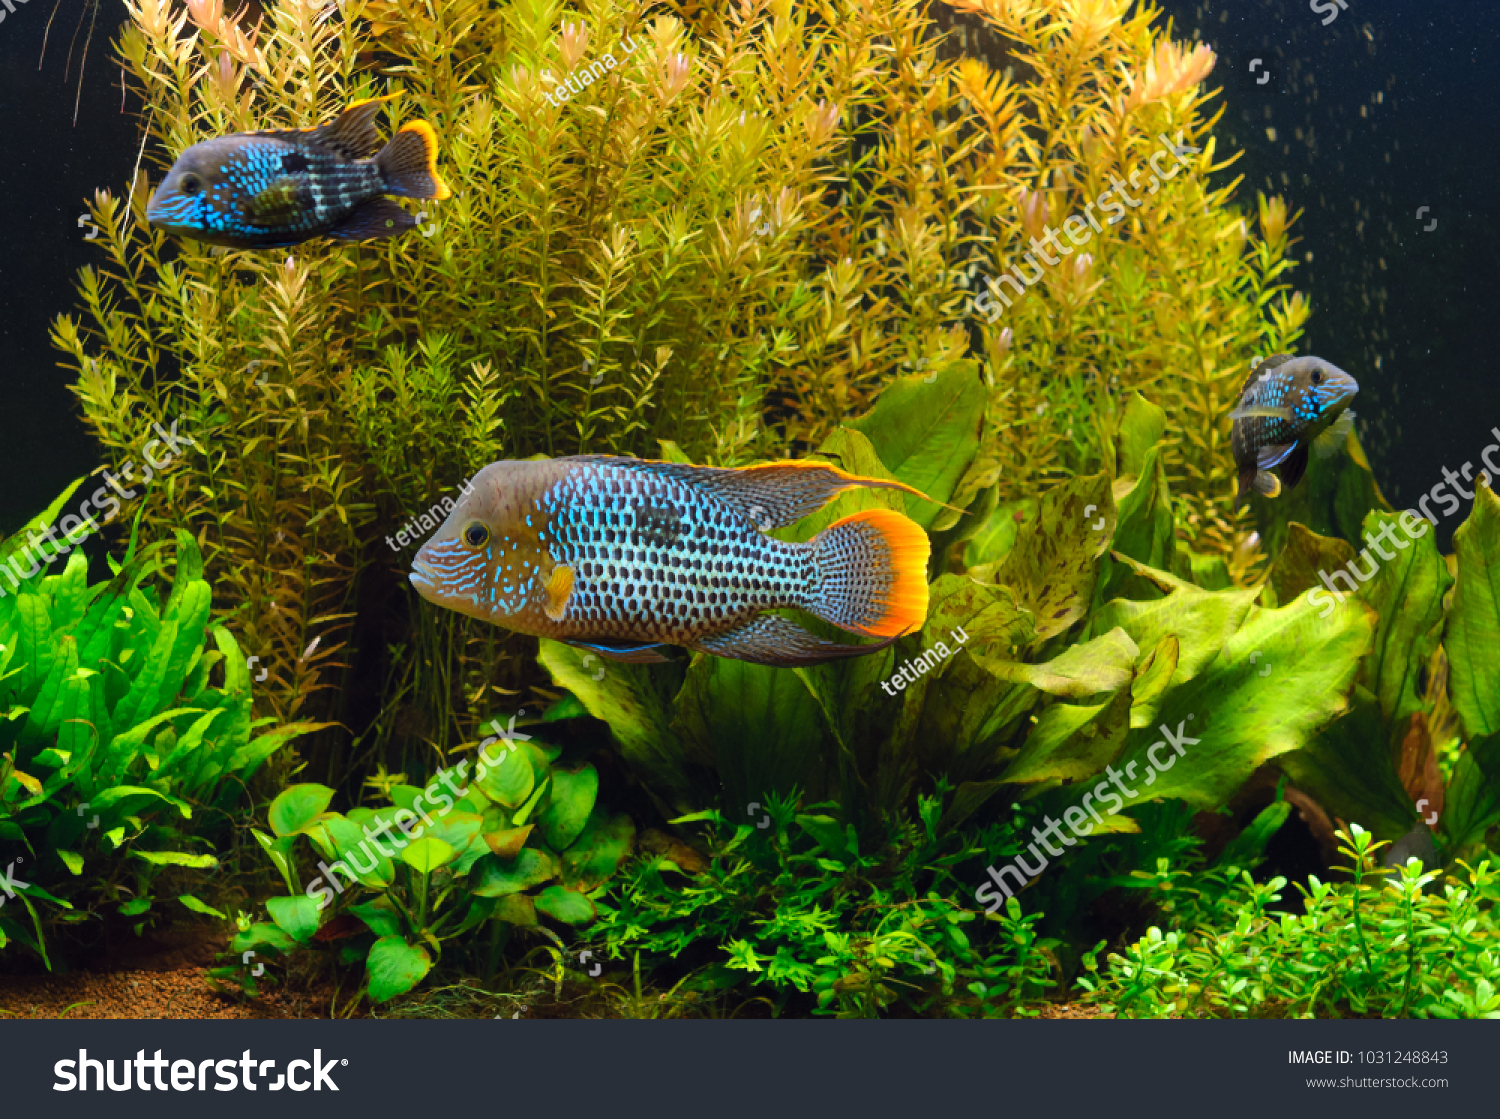 Planted Freshwater Aquarium Tropical Fishes Home Stock Photo Edit Thermometer Original For Aquascape With Pets